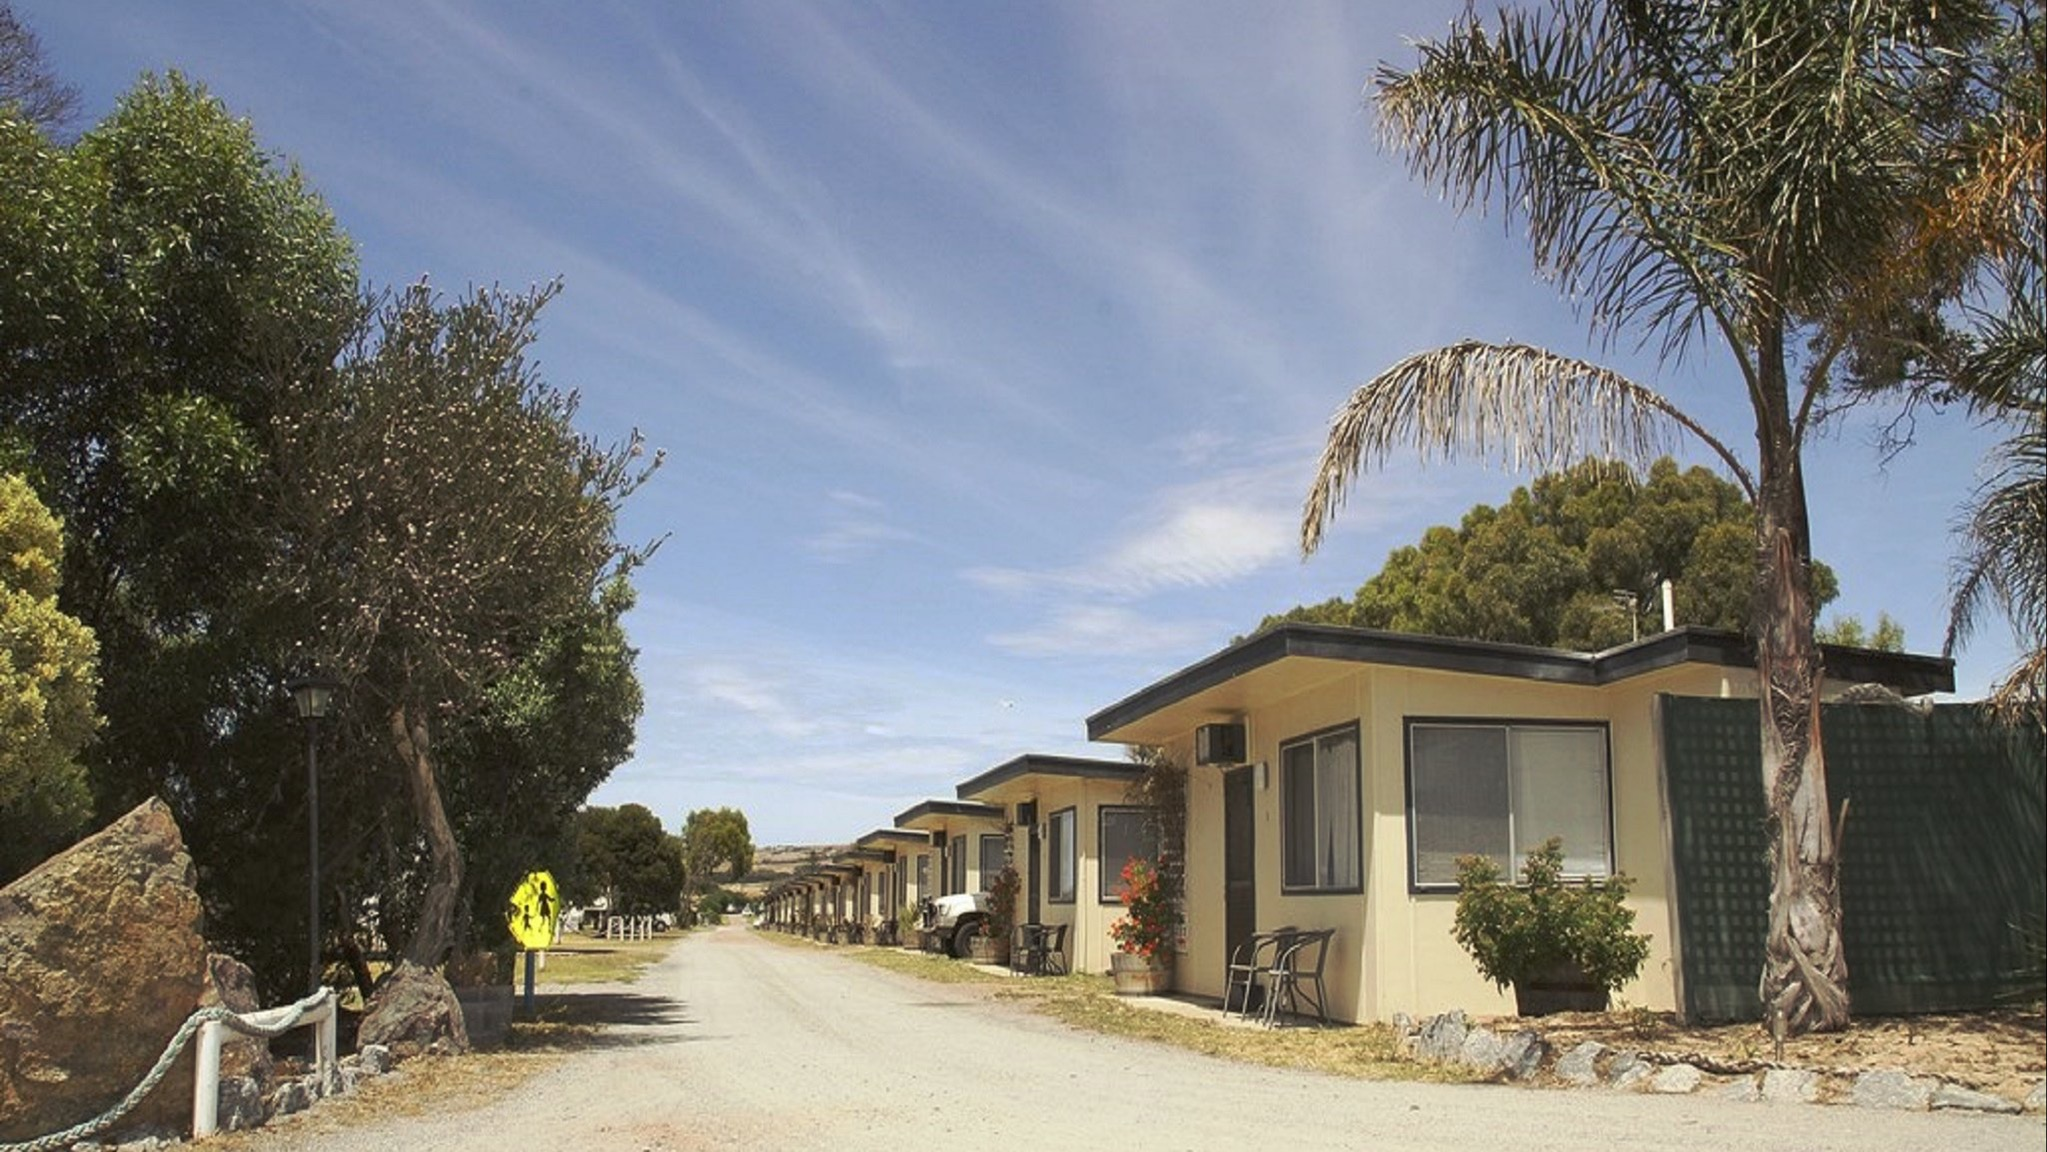 Port Lincoln Caravan Park - New South Wales Tourism